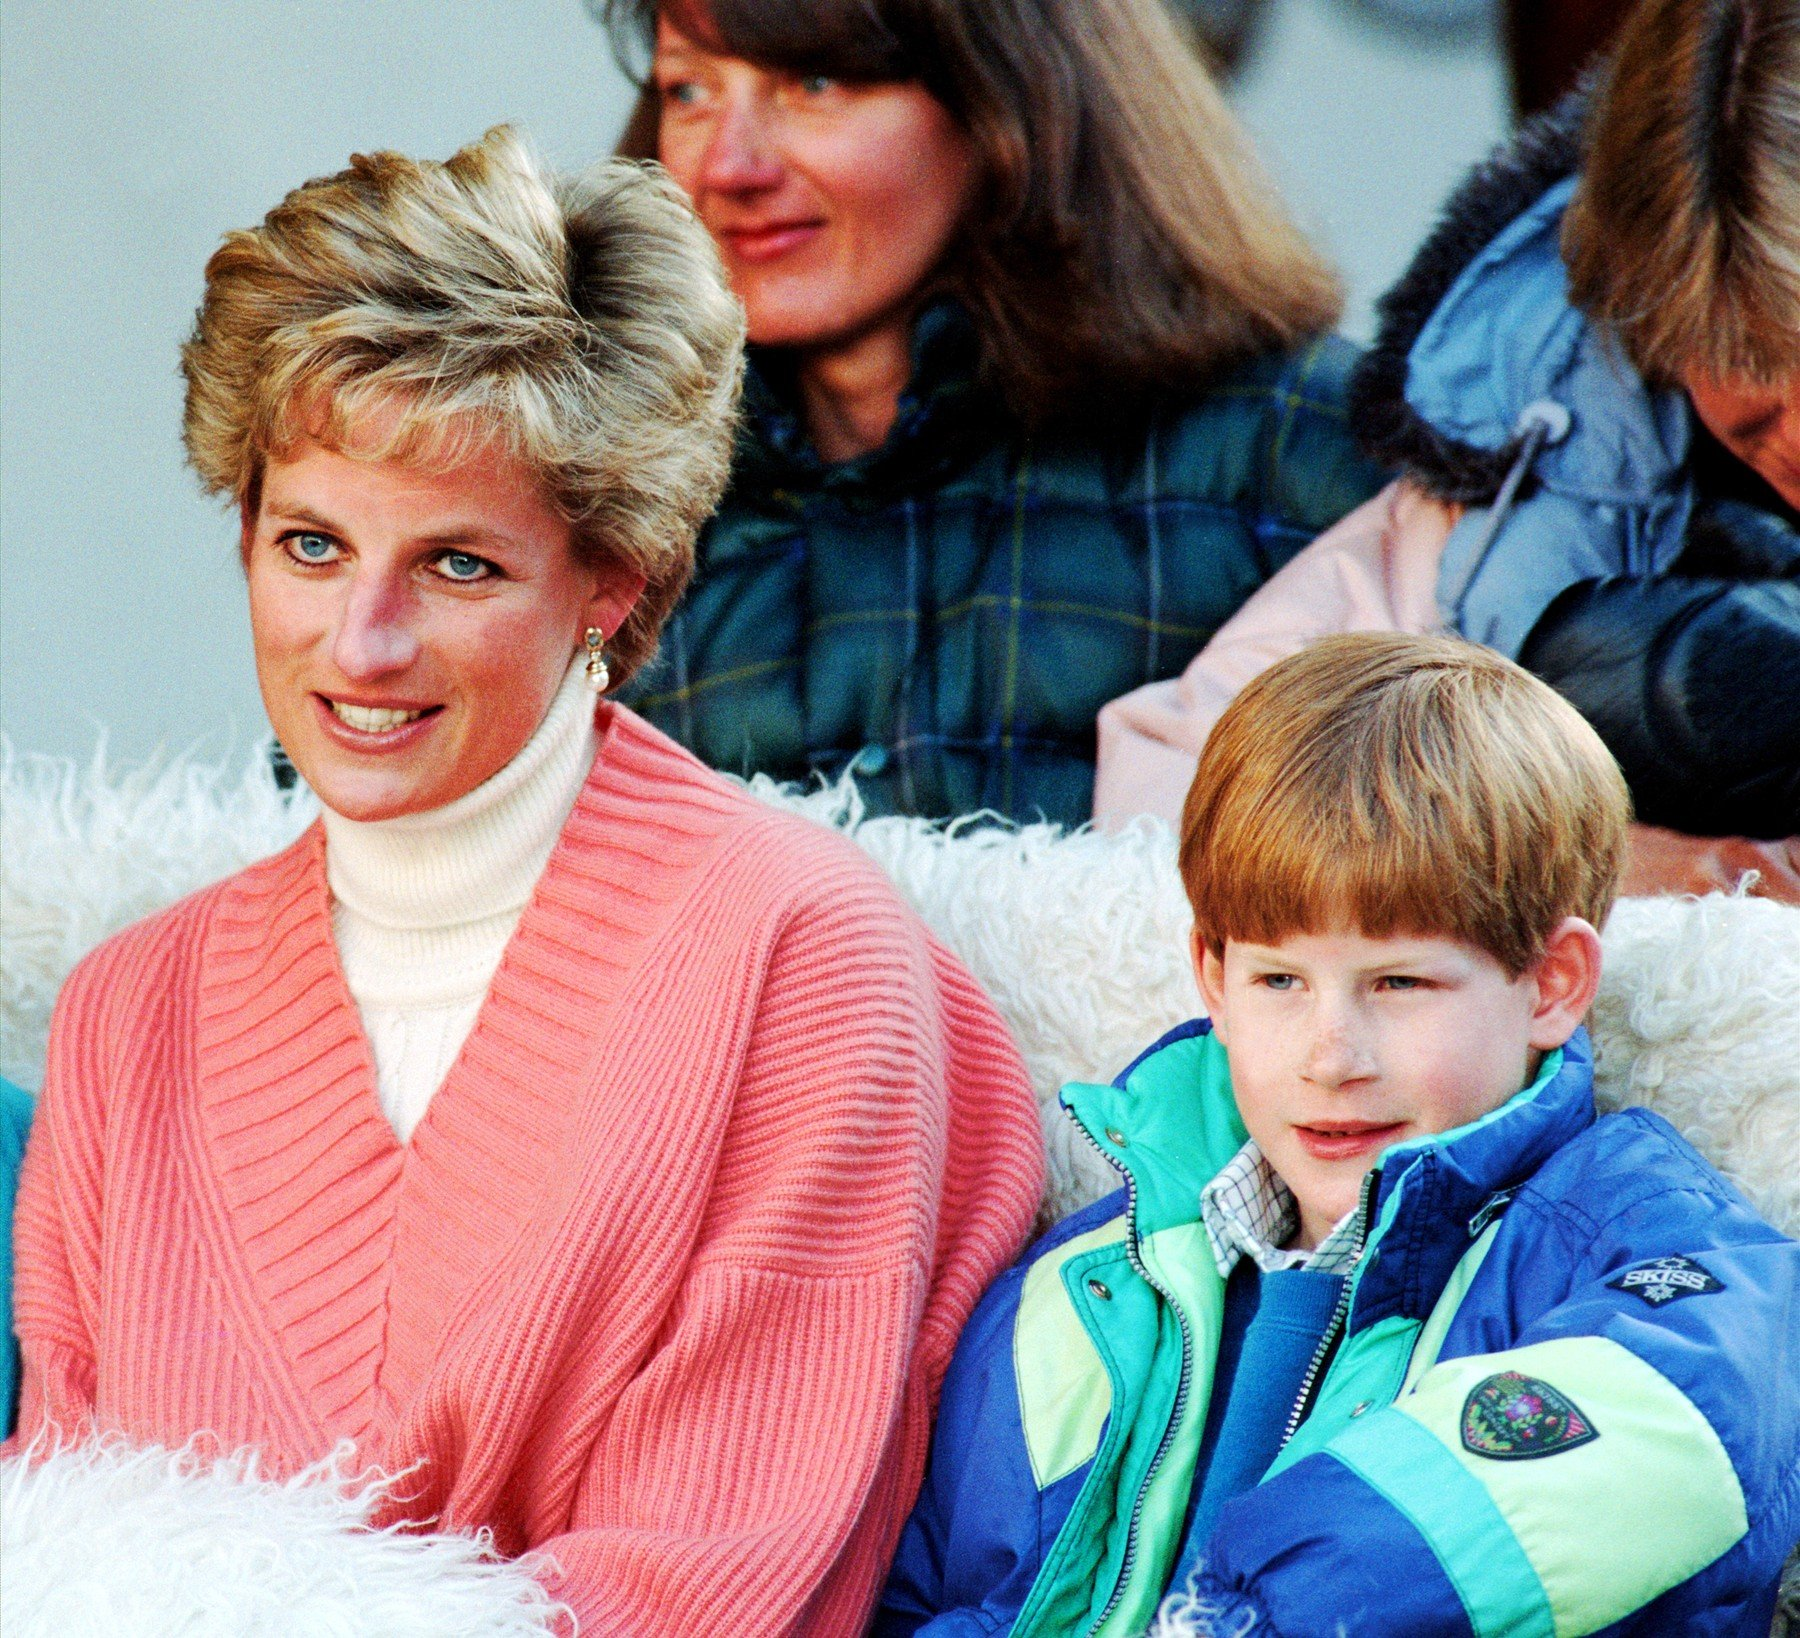 Princess Diana with Prince Harry Princess Diana on a skiing holiday, Lech, Austria - Mar 1994, Image: 230962492, License: Rights-managed, Restrictions: , Model Release: no, Credit line: Profimedia, TEMP Rex Features